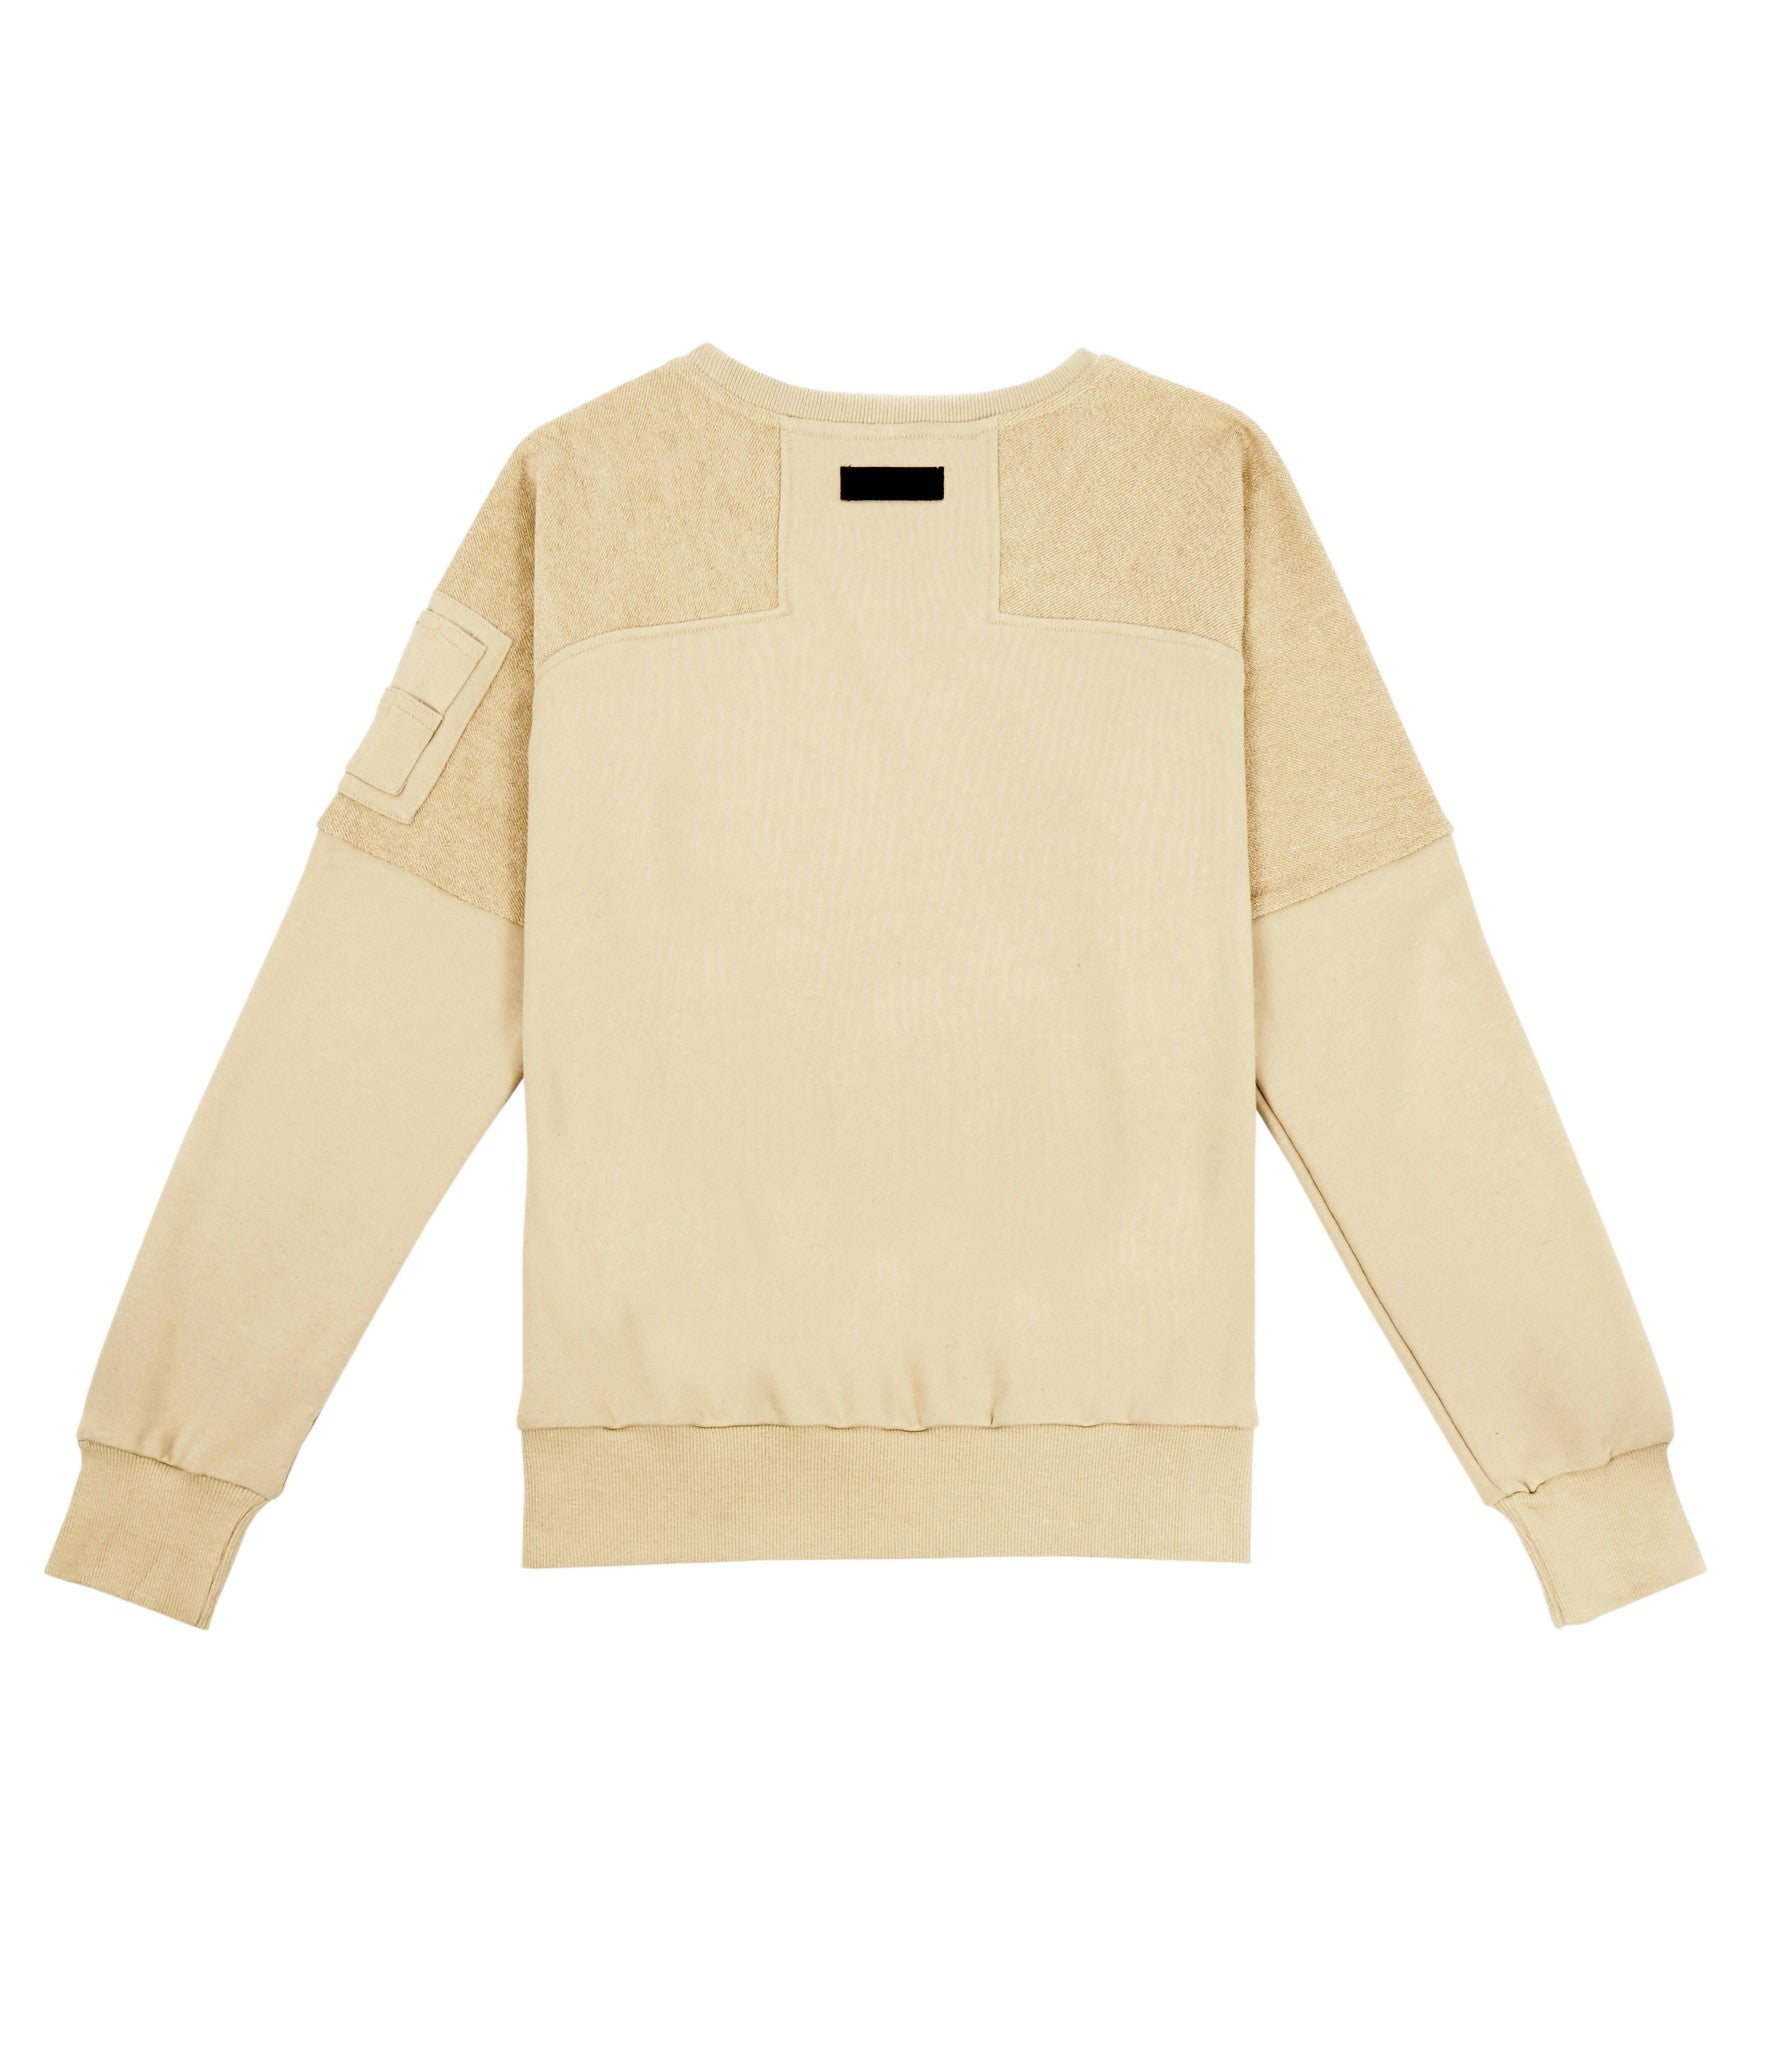 SW229 Oversized Utility Sweatshirt - Beige - underated london - underatedco - 3